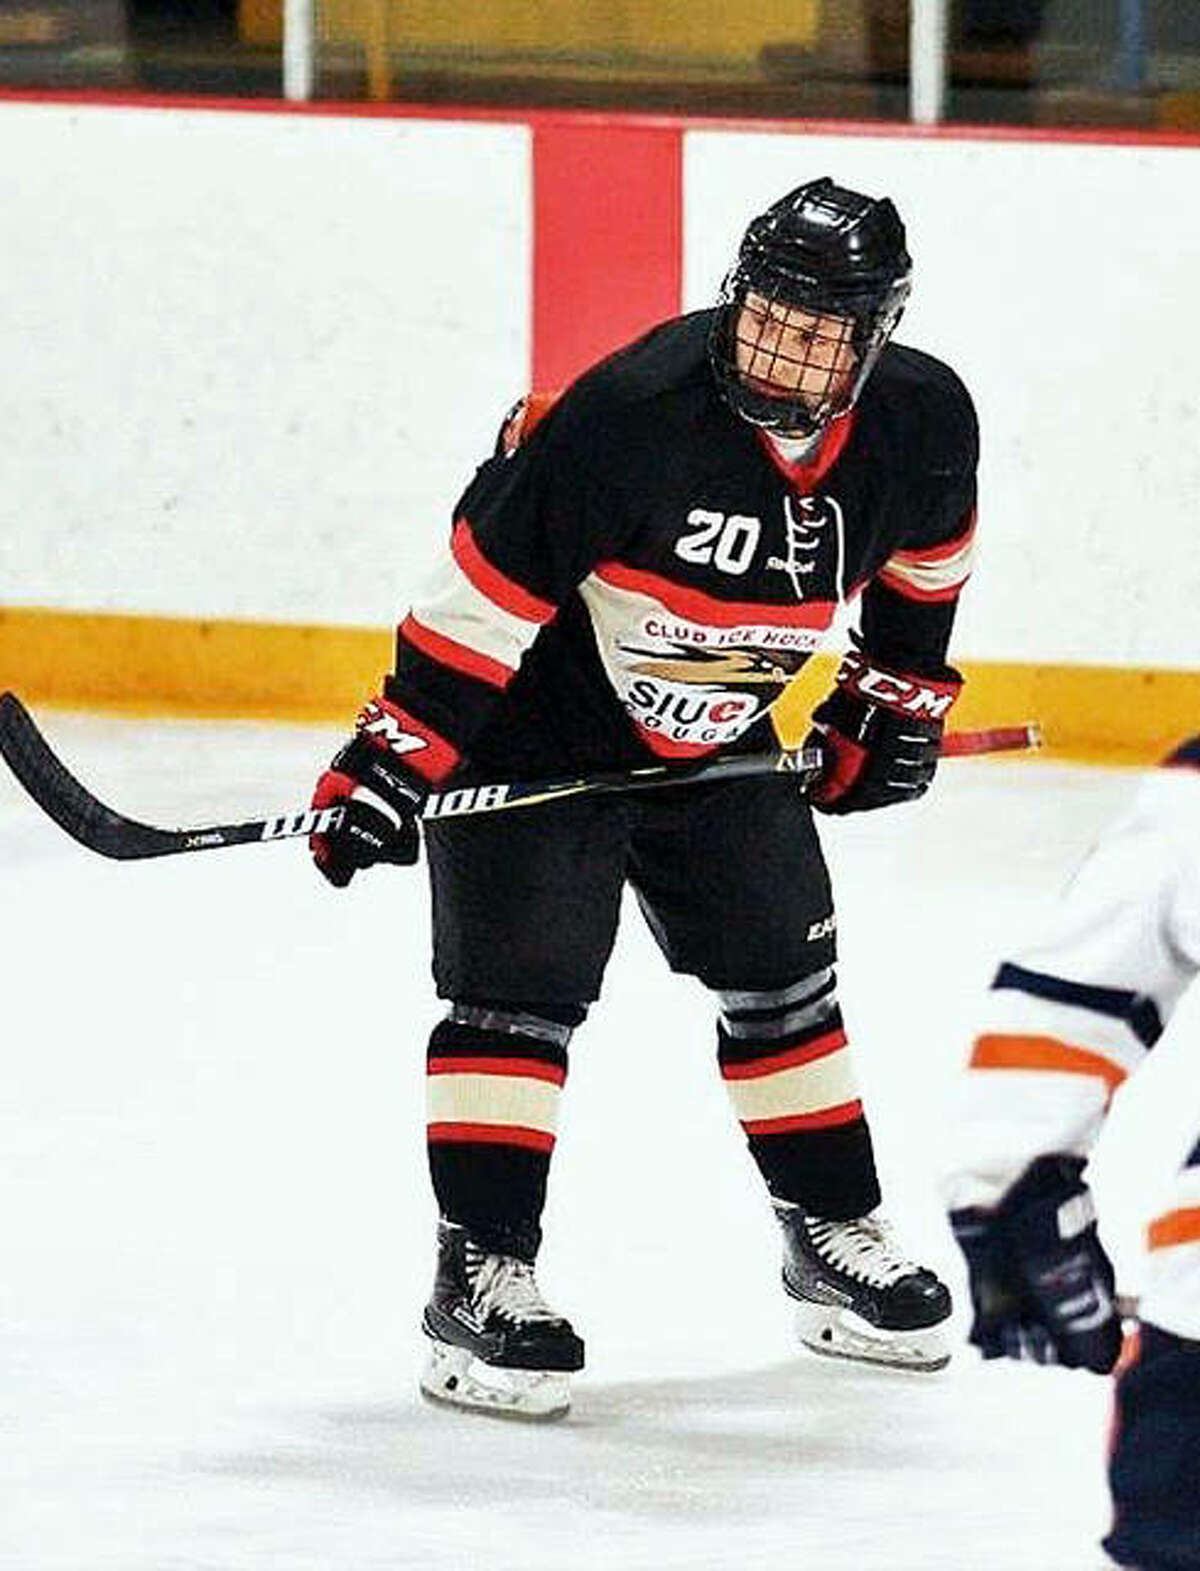 An SIUE hockey player waits for a face-off at the East Alton Ice Arena during a previous season. The arena serves as the home ice for the Cougars.